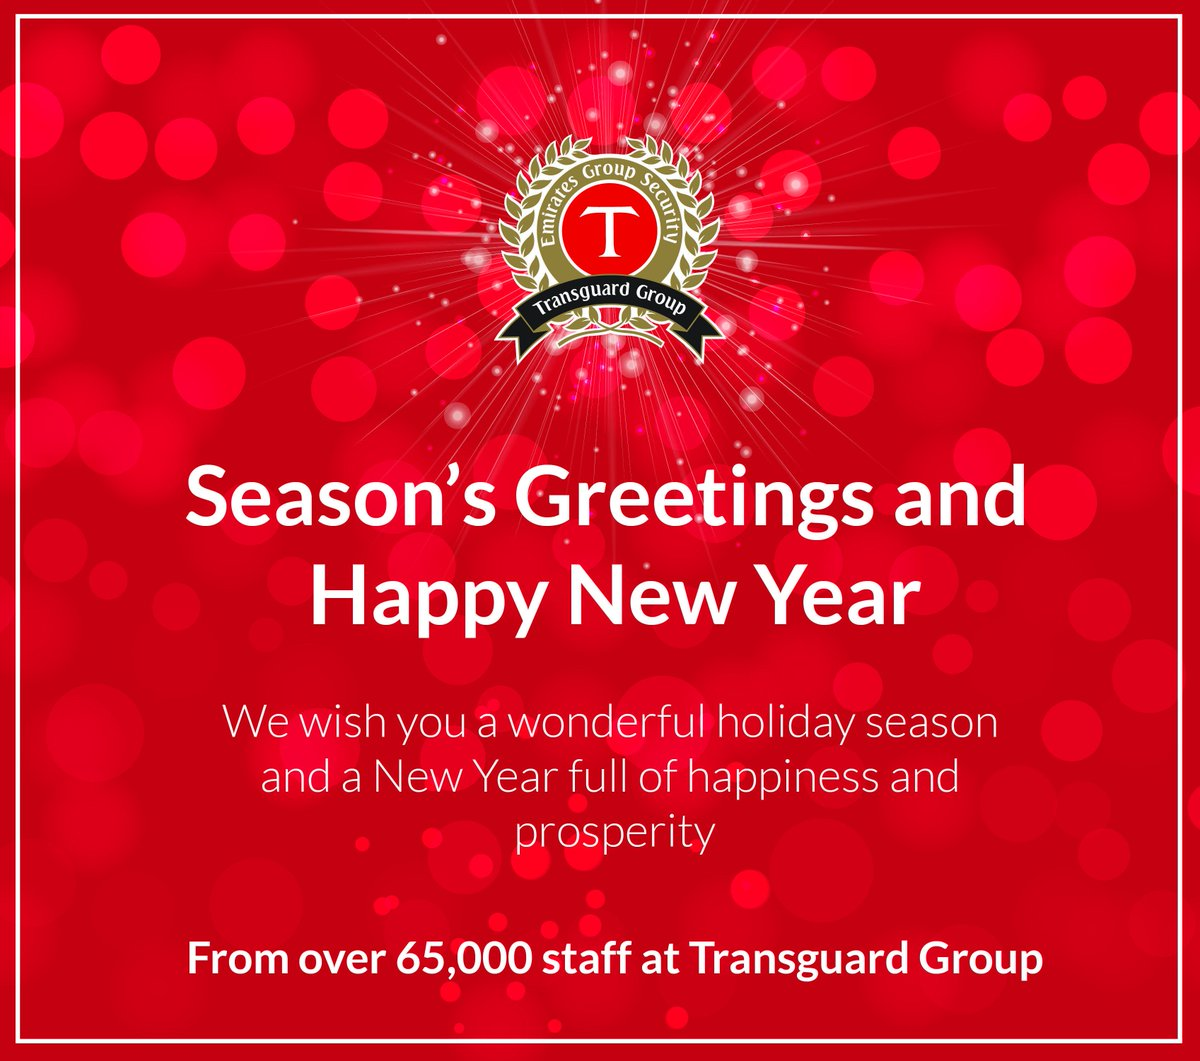 Transguard Group On Twitter Seasons Greetings And Happy New Year